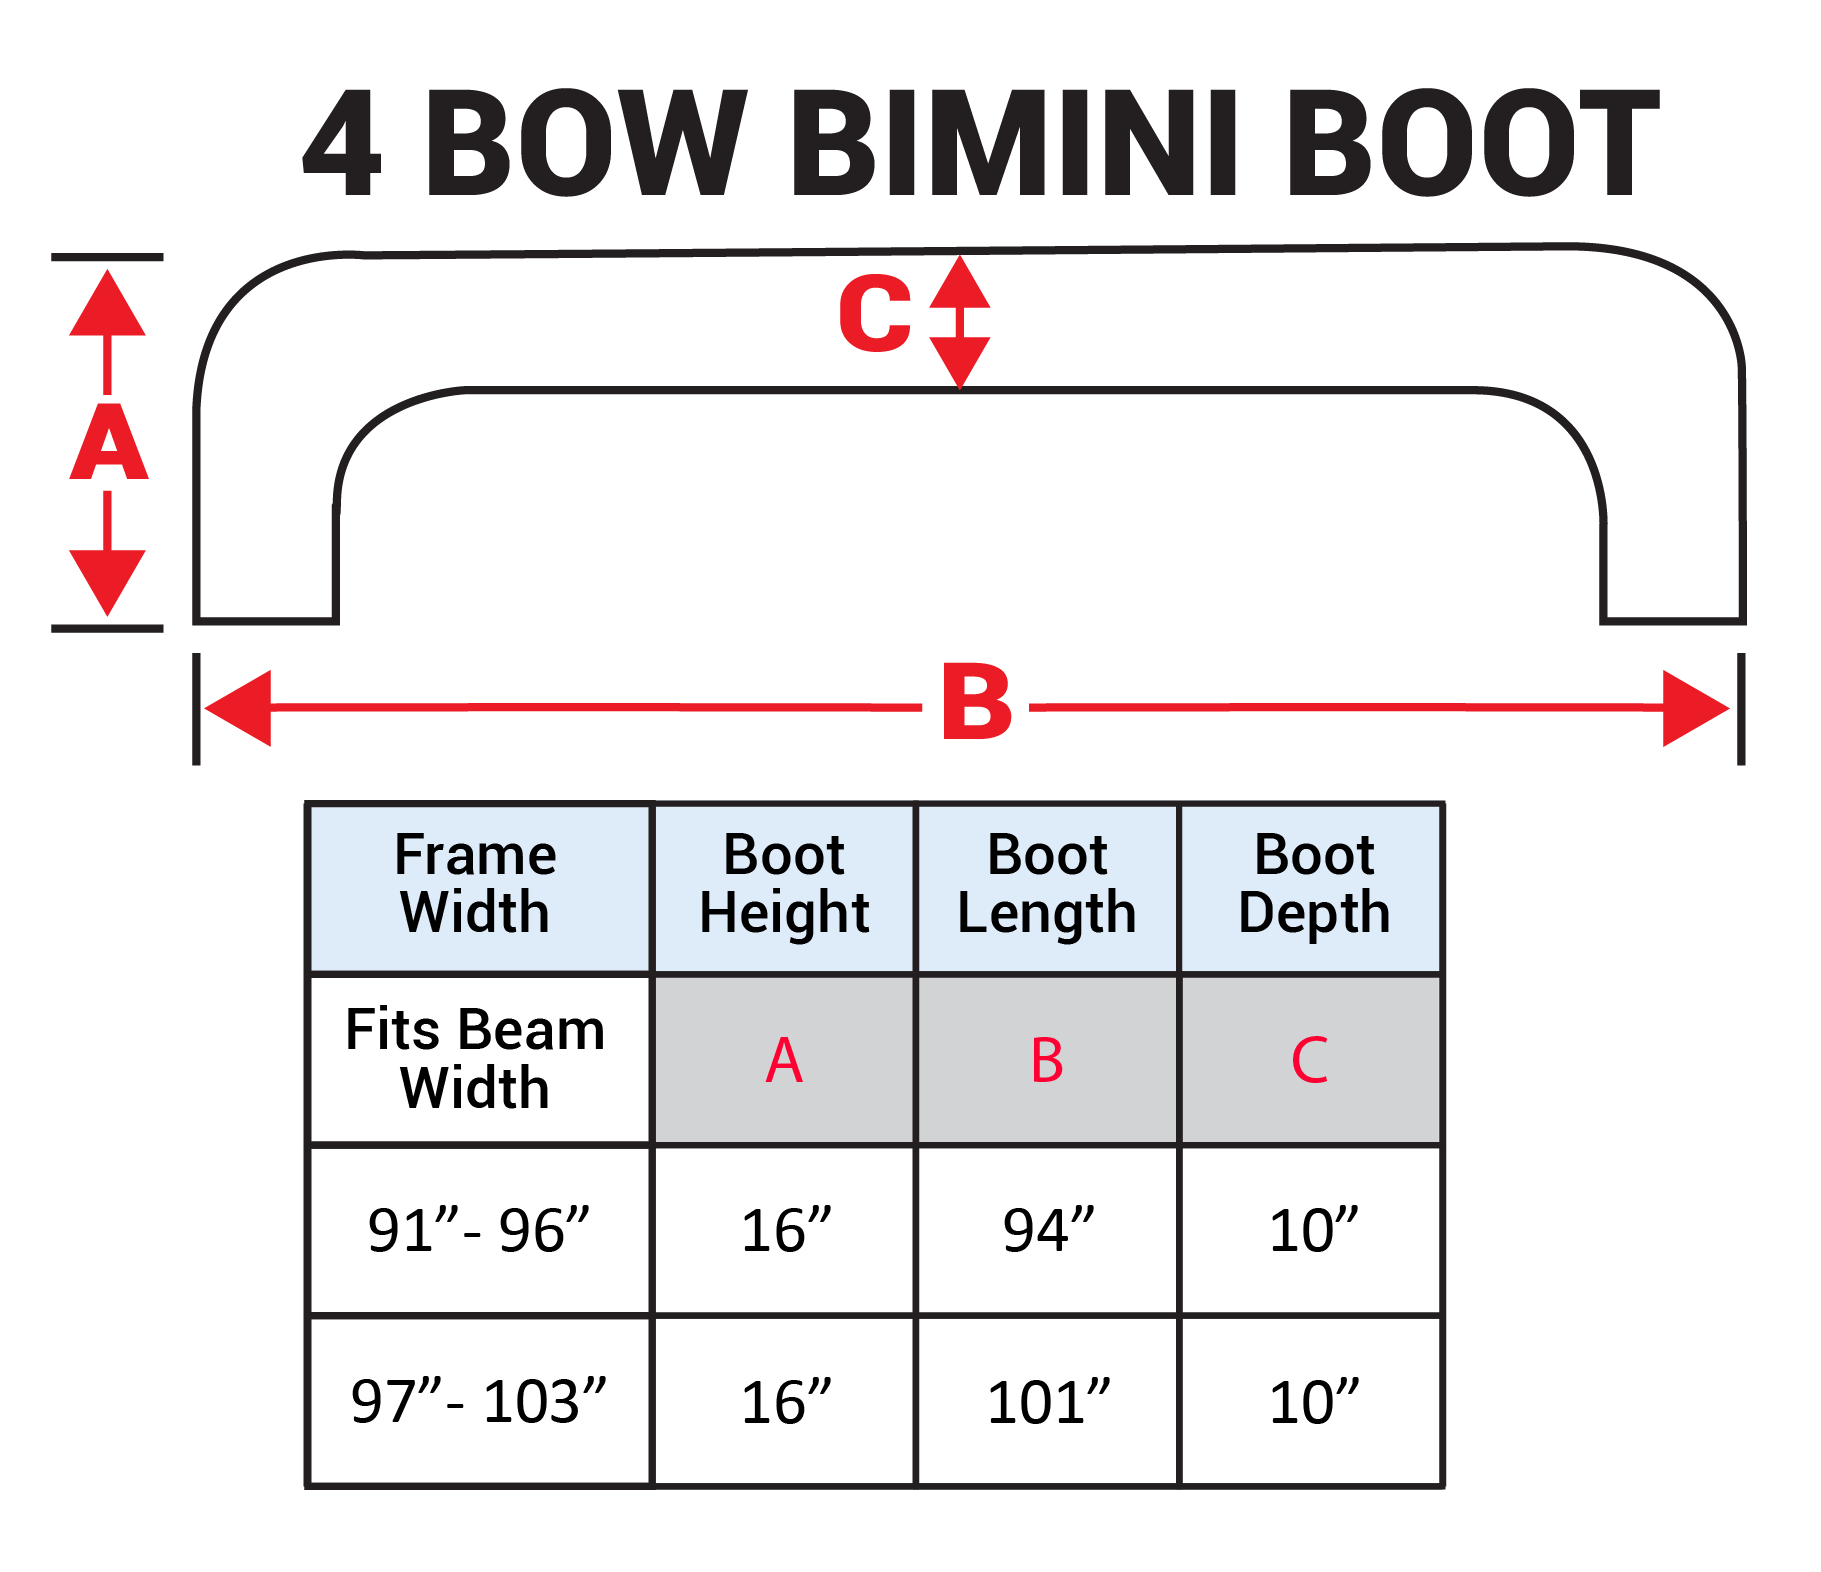 NBT-4-bow-bimini-boot-graphic_1